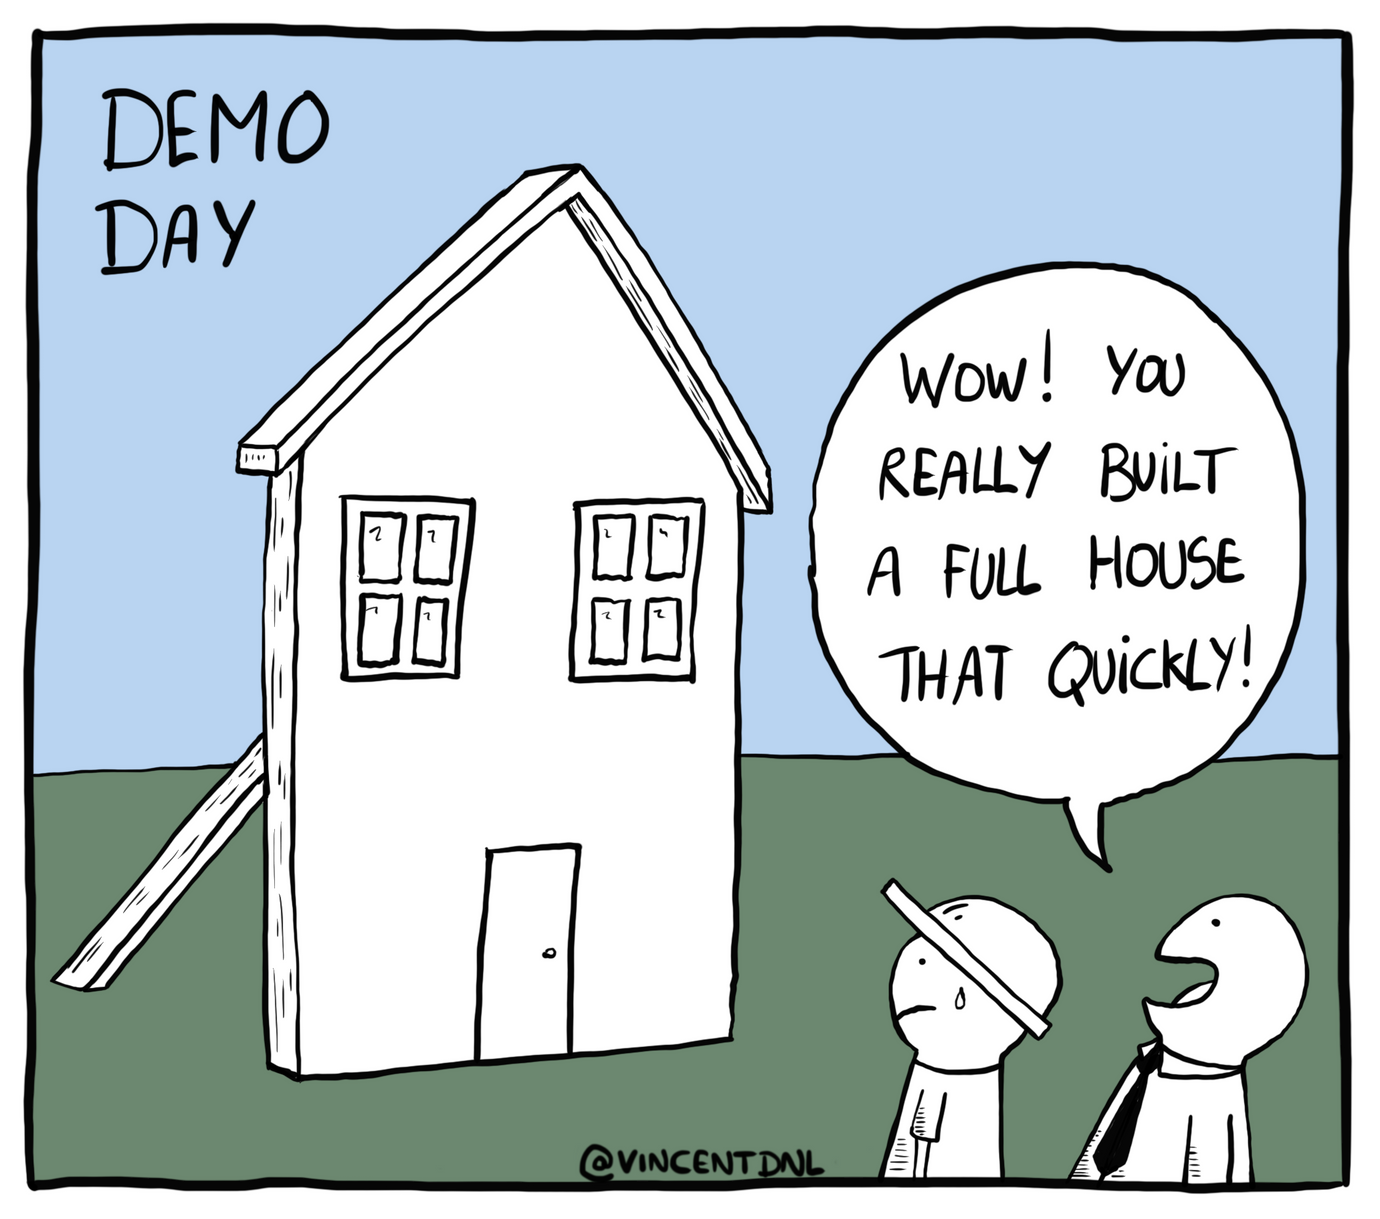 drawing - text: Demo Day - Wow! You really built a full house that quickly!